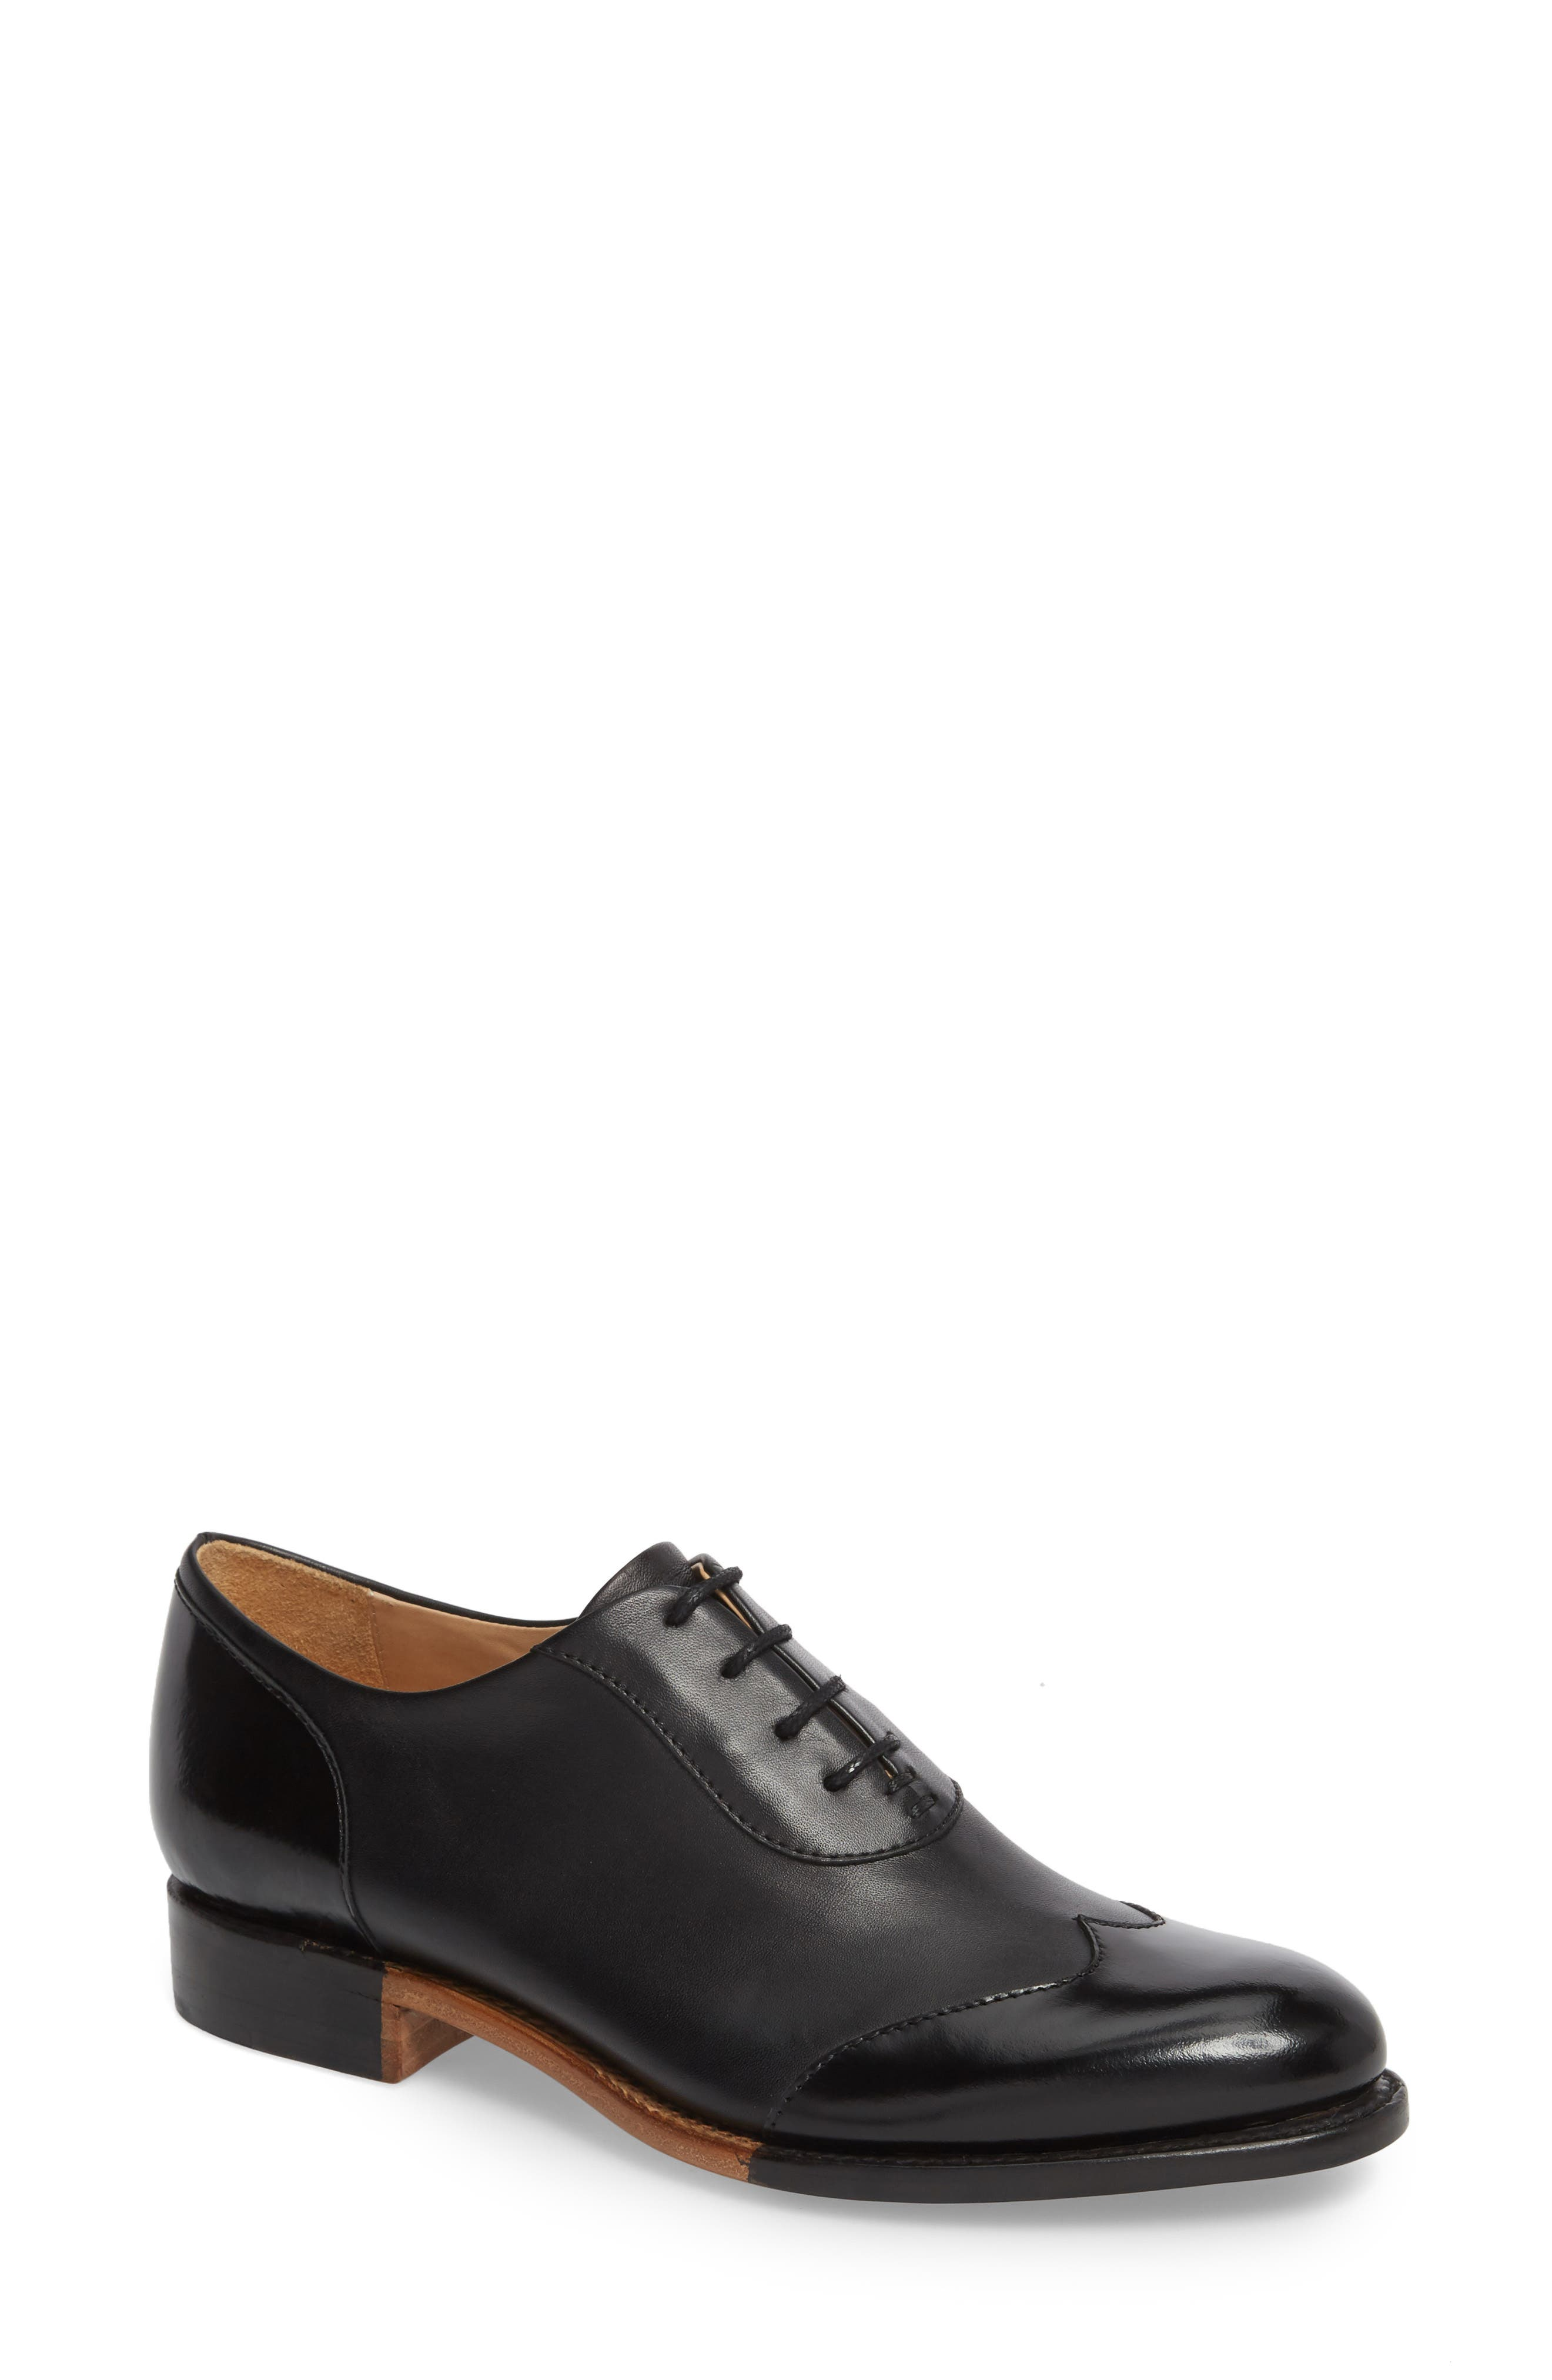 Whether it\\\'s an office meeting or weekend meet-up, rock it in wingtip loafers made modern with contrast detailing at the sole. Style Name: The Office Of Angela Scott Mr. Evans Oxford (Women). Style Number: 5616683 1. Available in stores.